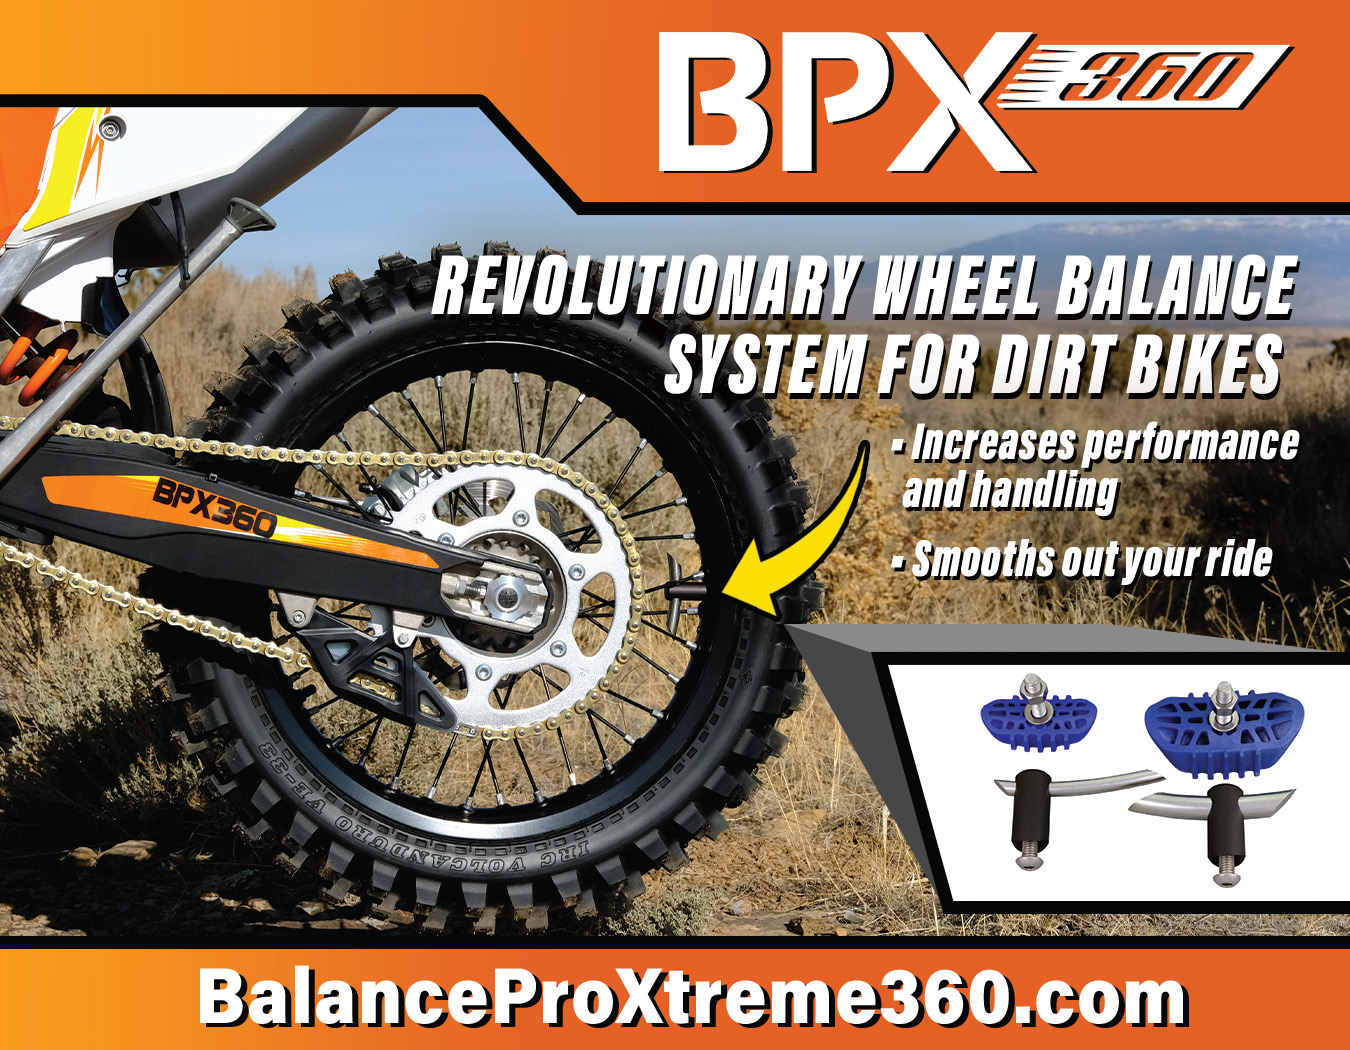 BPX360 Ad for Dirt Bike Magazine